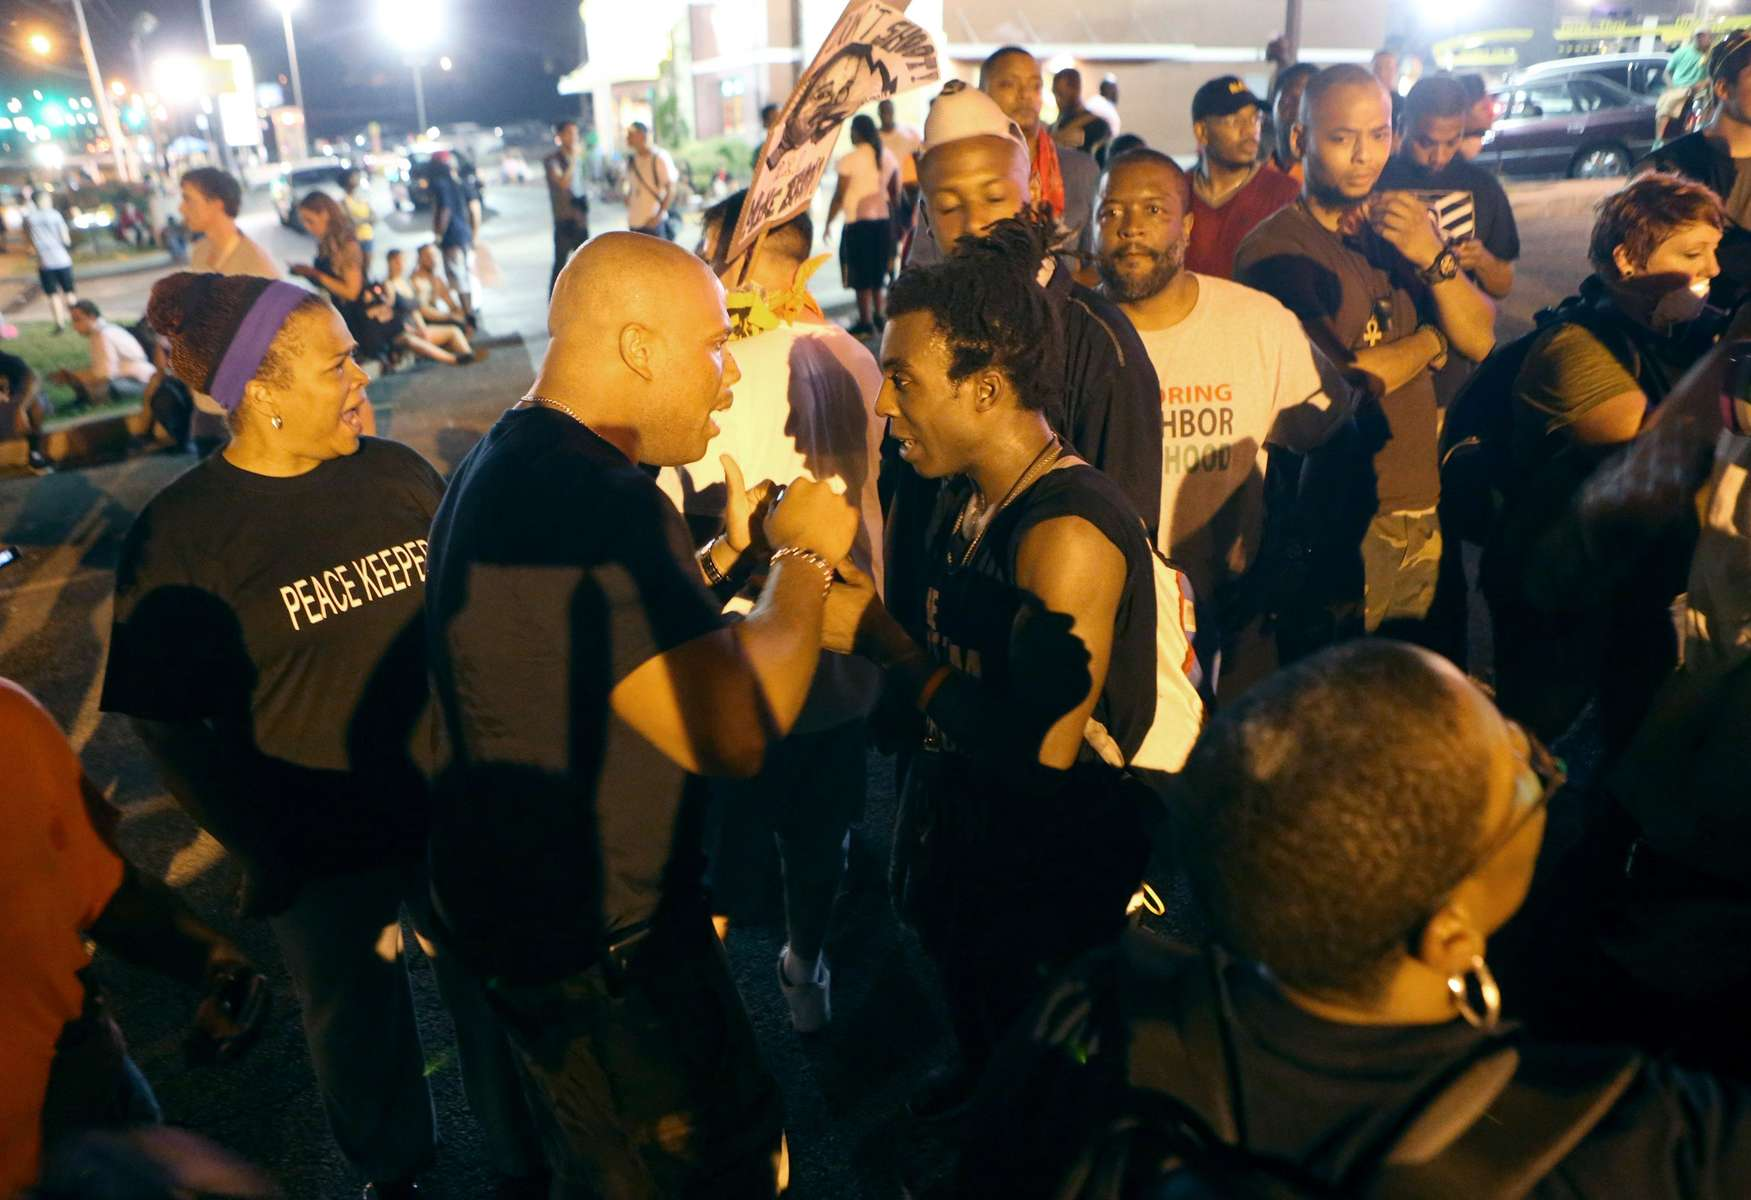 A Peace keeper (center left) and an man who was giving an impassioned speech advocating for a more confrontational protest argue near the McDonalds on W. Florissant Avenue in Ferguson on Sunday, Aug 24, 2014.   There was a debate in the crowd about what type of protest was going to be taking place with some people advocating a peaceful protest and others seeking a more confrontational approach.